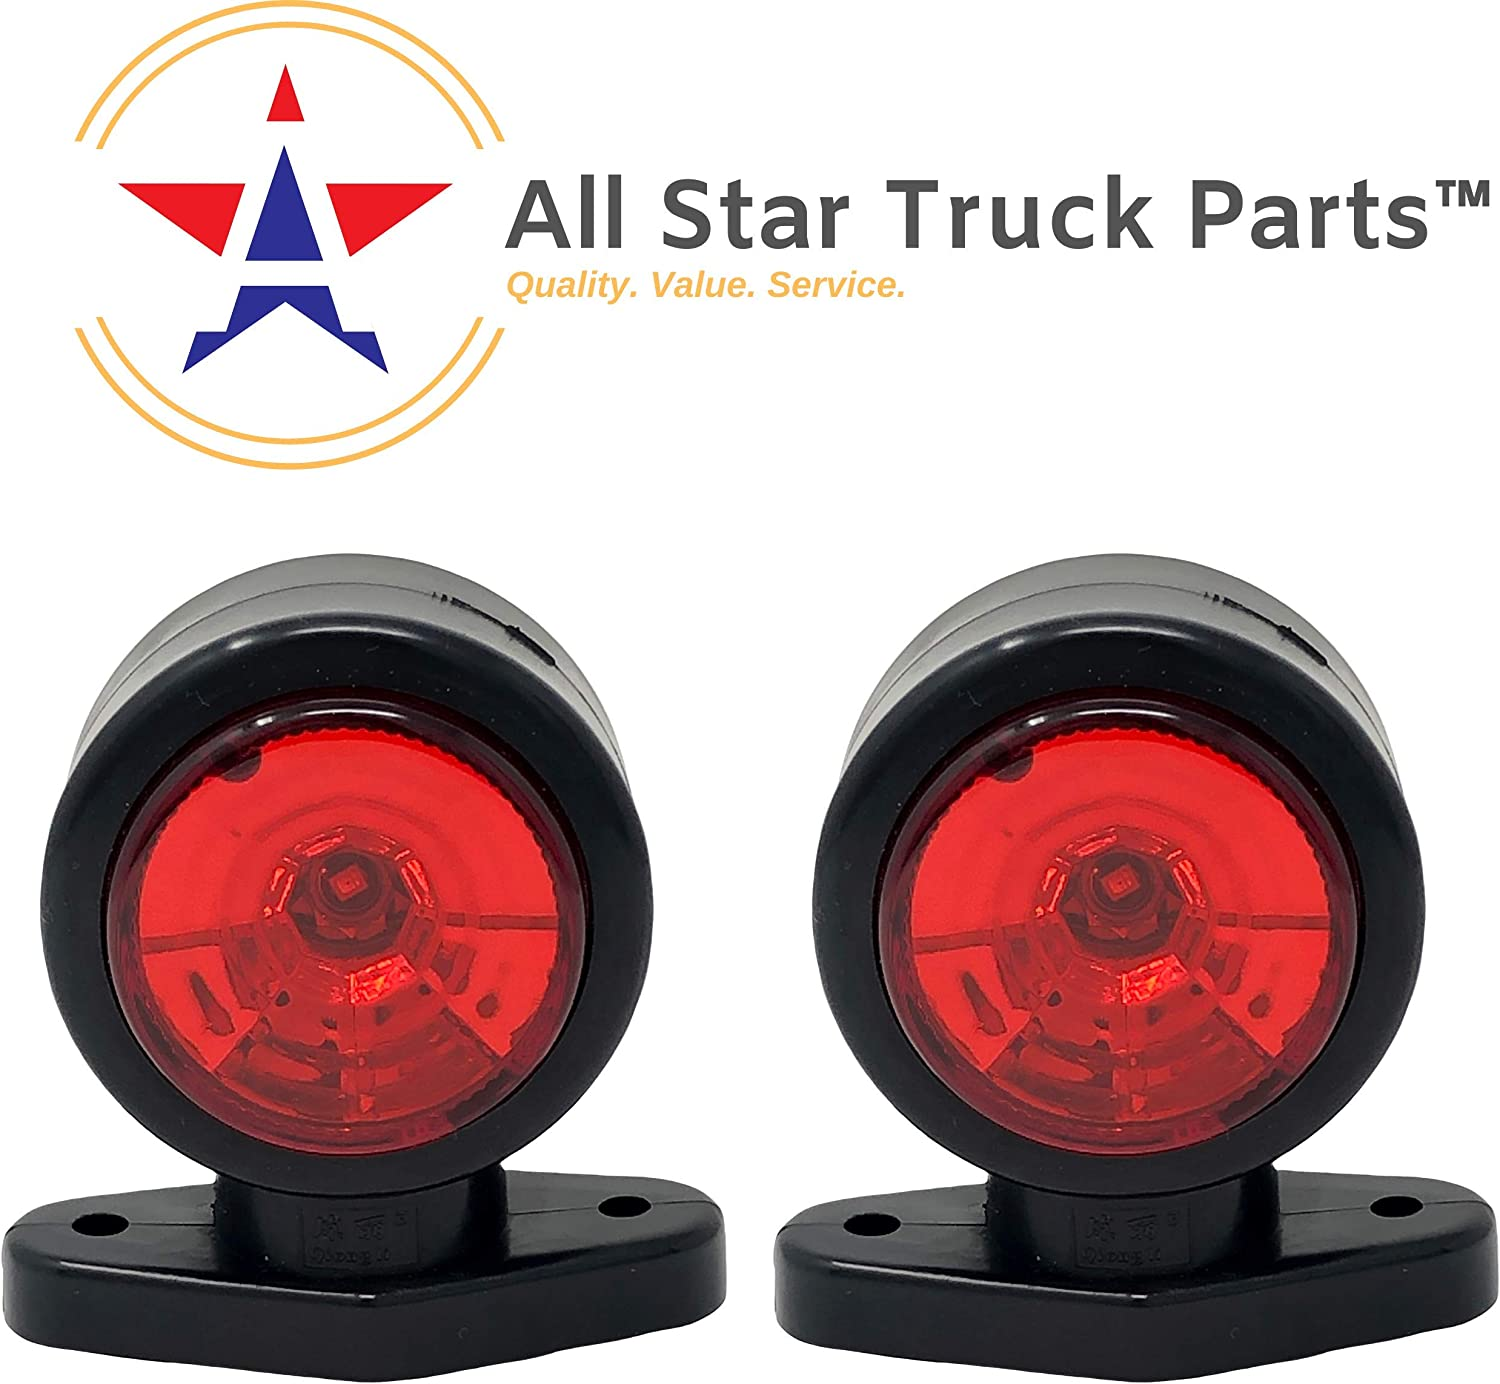 futurepost.co.nz Left and Right Rugged Waterproof ALL STAR TRUCK ...